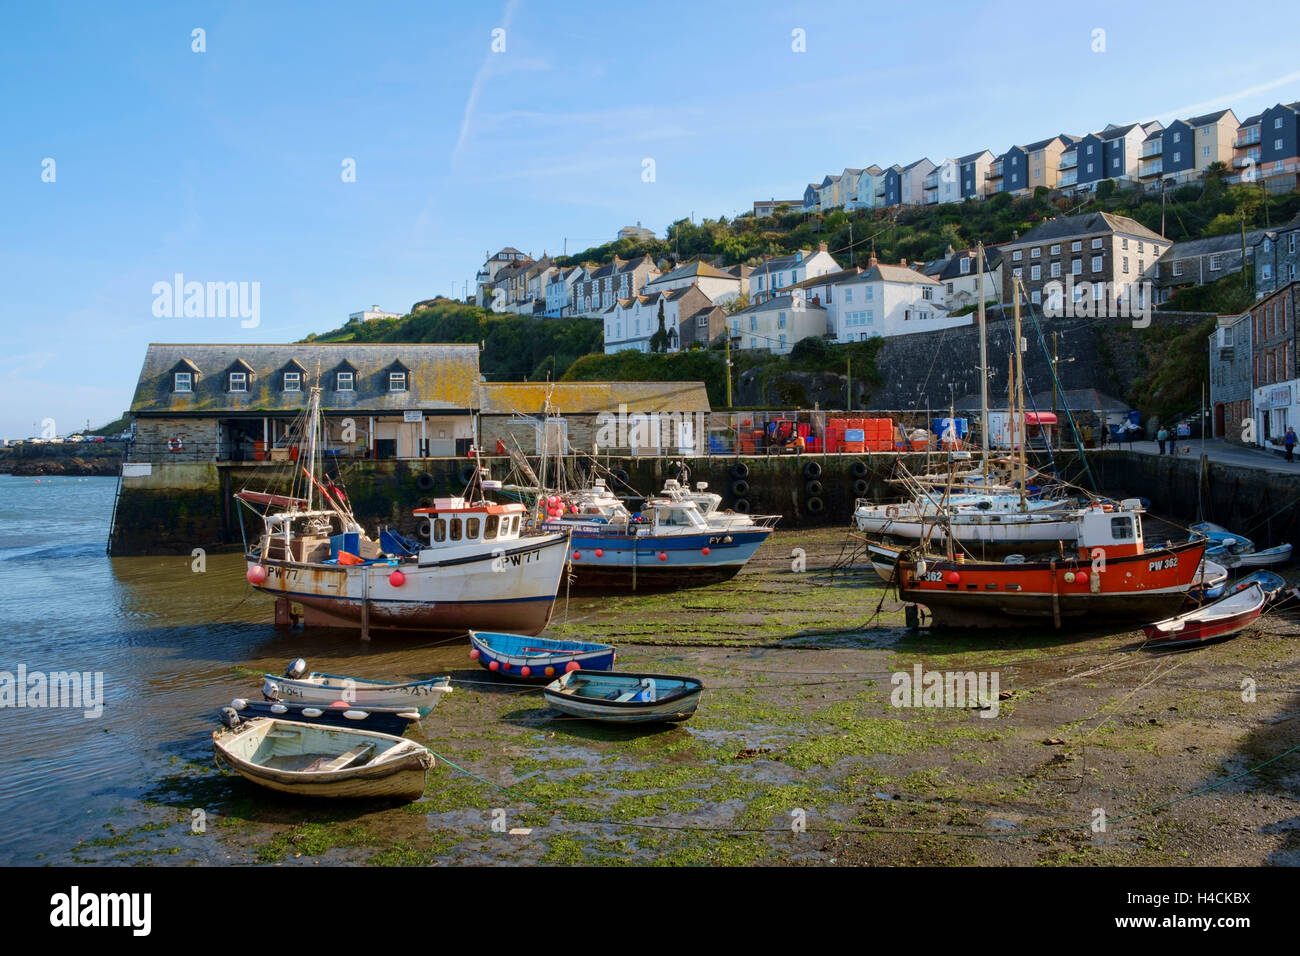 Mevagissey harbour with fishing boats at low tide, Cornwall, England, UK - Stock Image